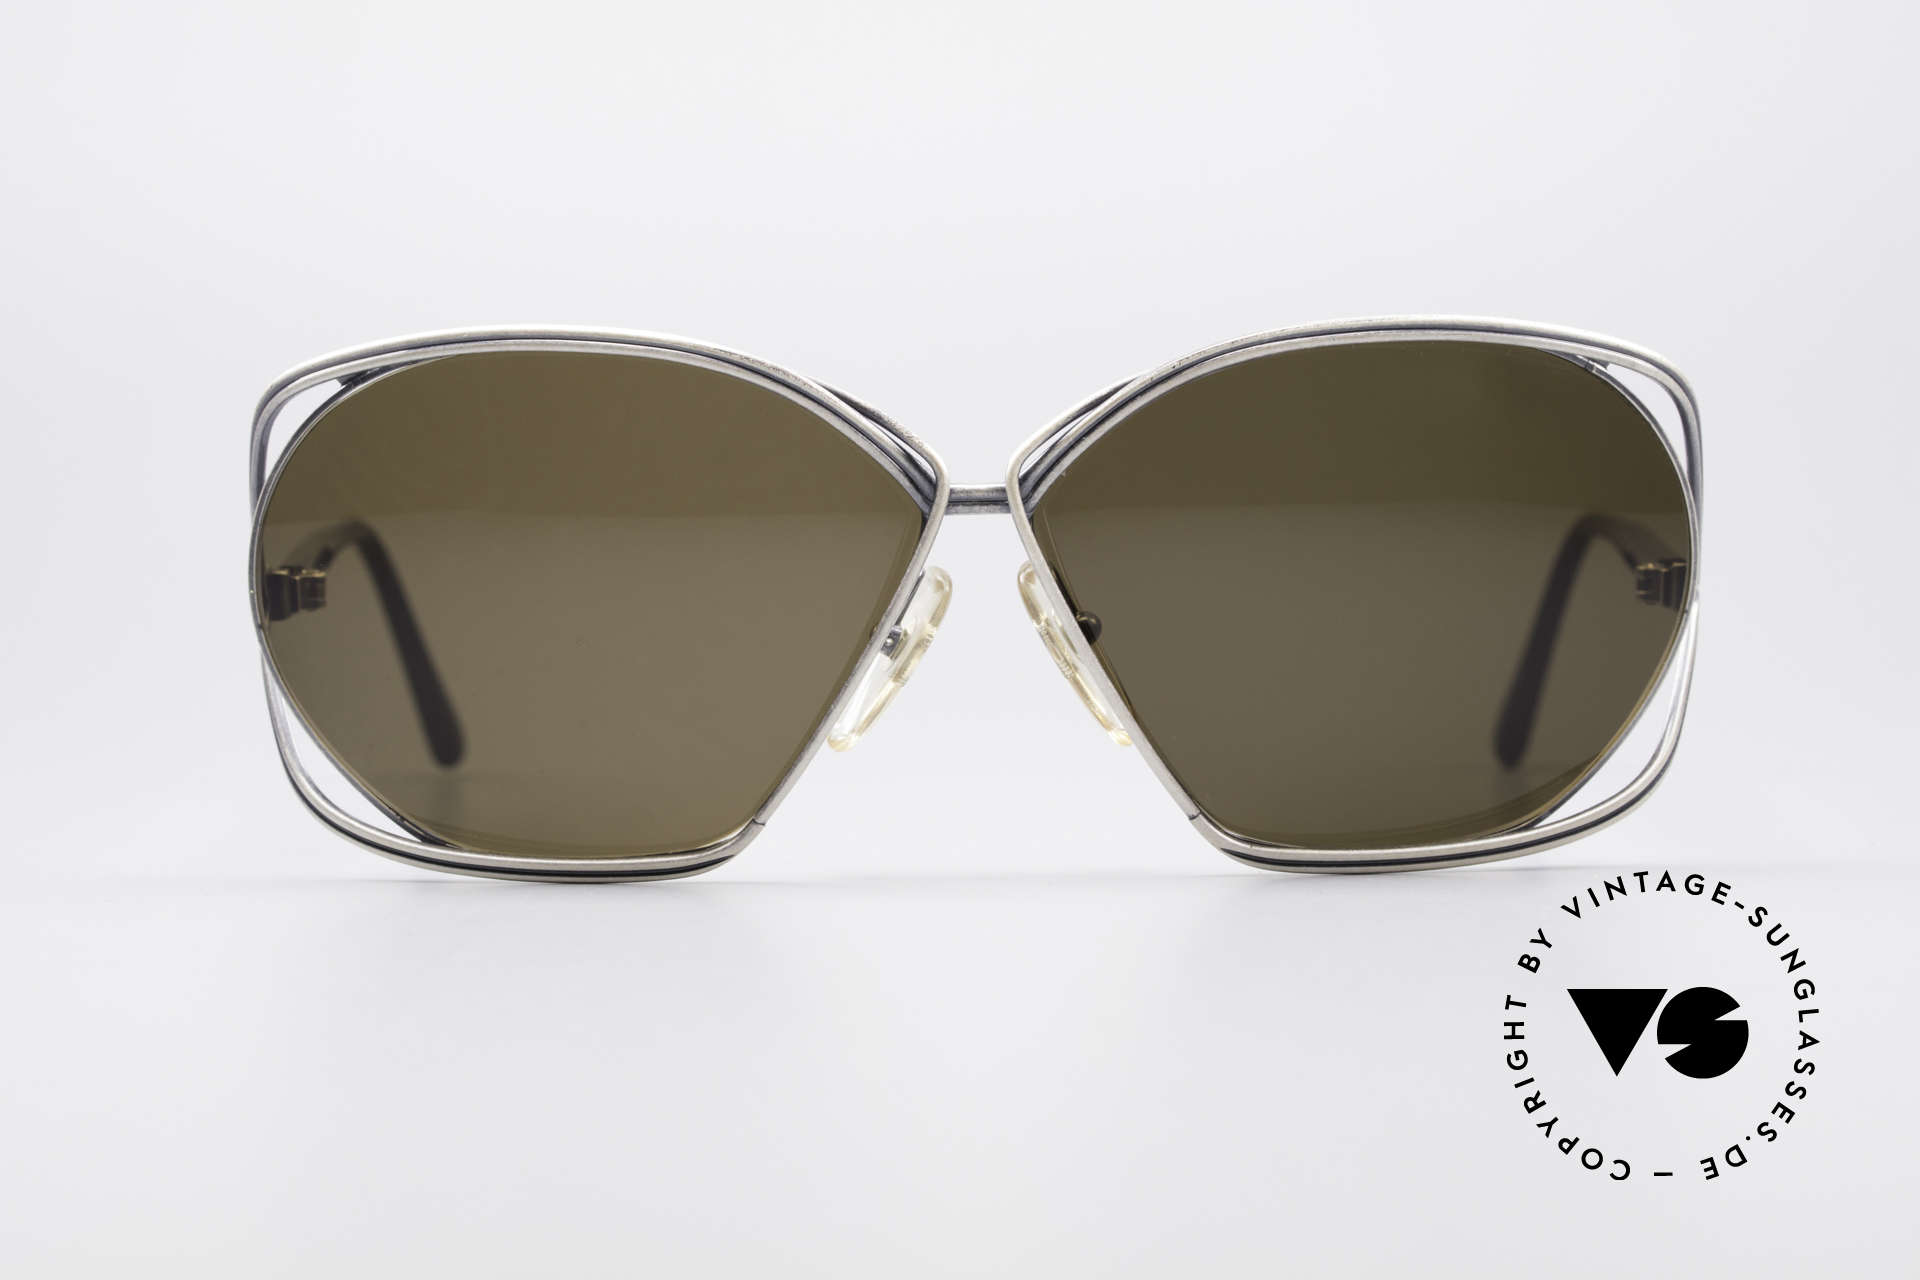 Christian Dior 2499 1980's Ladies Sunglasses, legendary 'butterfly-design' by famous Christian Dior, Made for Women